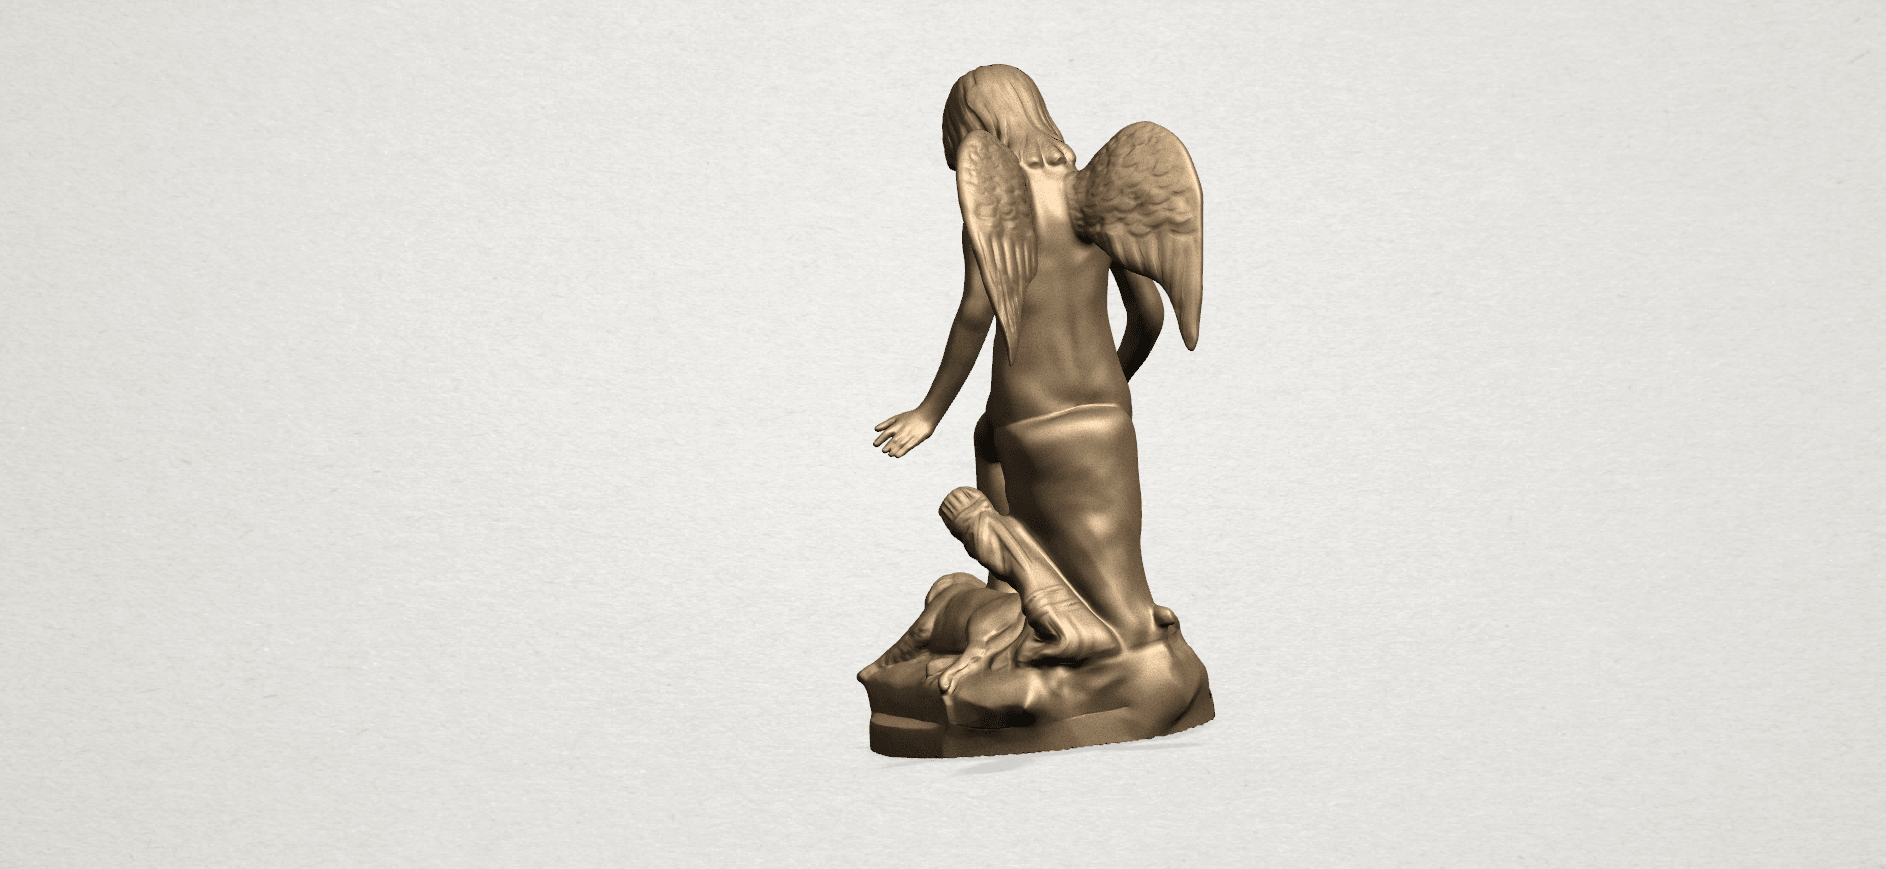 Angel and Dog A08.png Download free STL file Angel and Dog • 3D print model, GeorgesNikkei